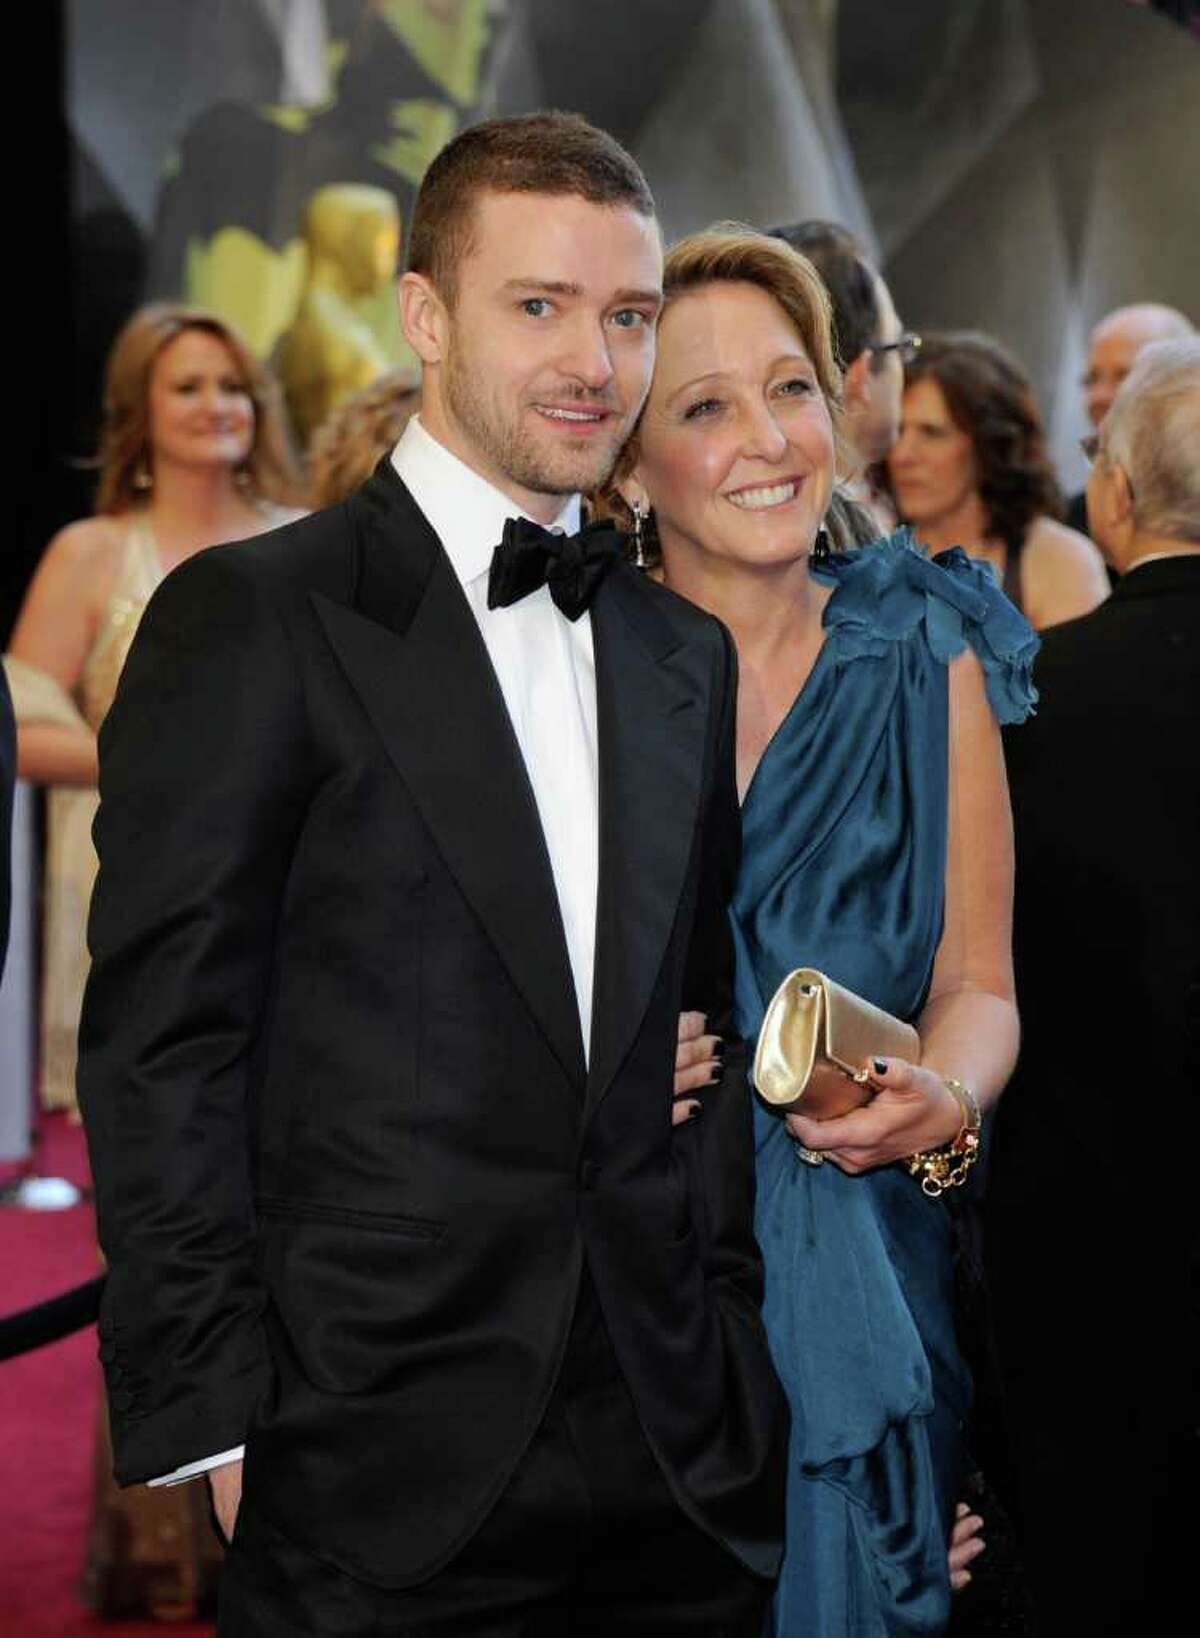 HOLLYWOOD, CA - FEBRUARY 27: Actor/singer Justin Timberlake (L) and his mother Lynn Harless arrive at the 83rd Annual Academy Awards held at the Kodak Theatre on February 27, 2011 in Hollywood, California. (Photo by Ethan Miller/Getty Images) *** Local Caption *** Justin Timberlake;Lynn Harless